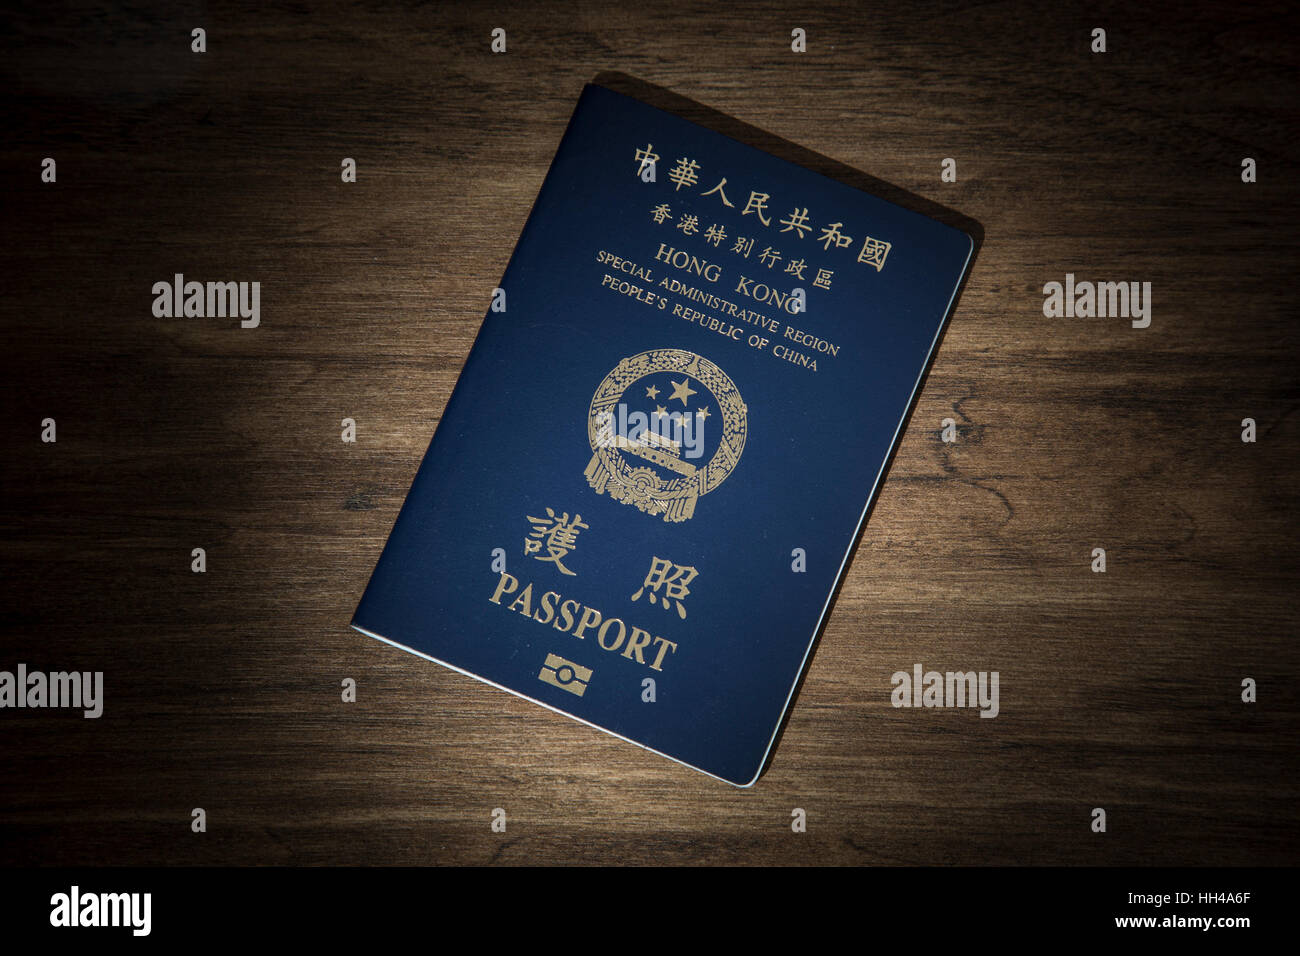 Hong Kong. 16th Jan, 2017. The picture shows the cover of the Hong Kong(HKSAR) passport on the desk. Article 4 of - Stock Image